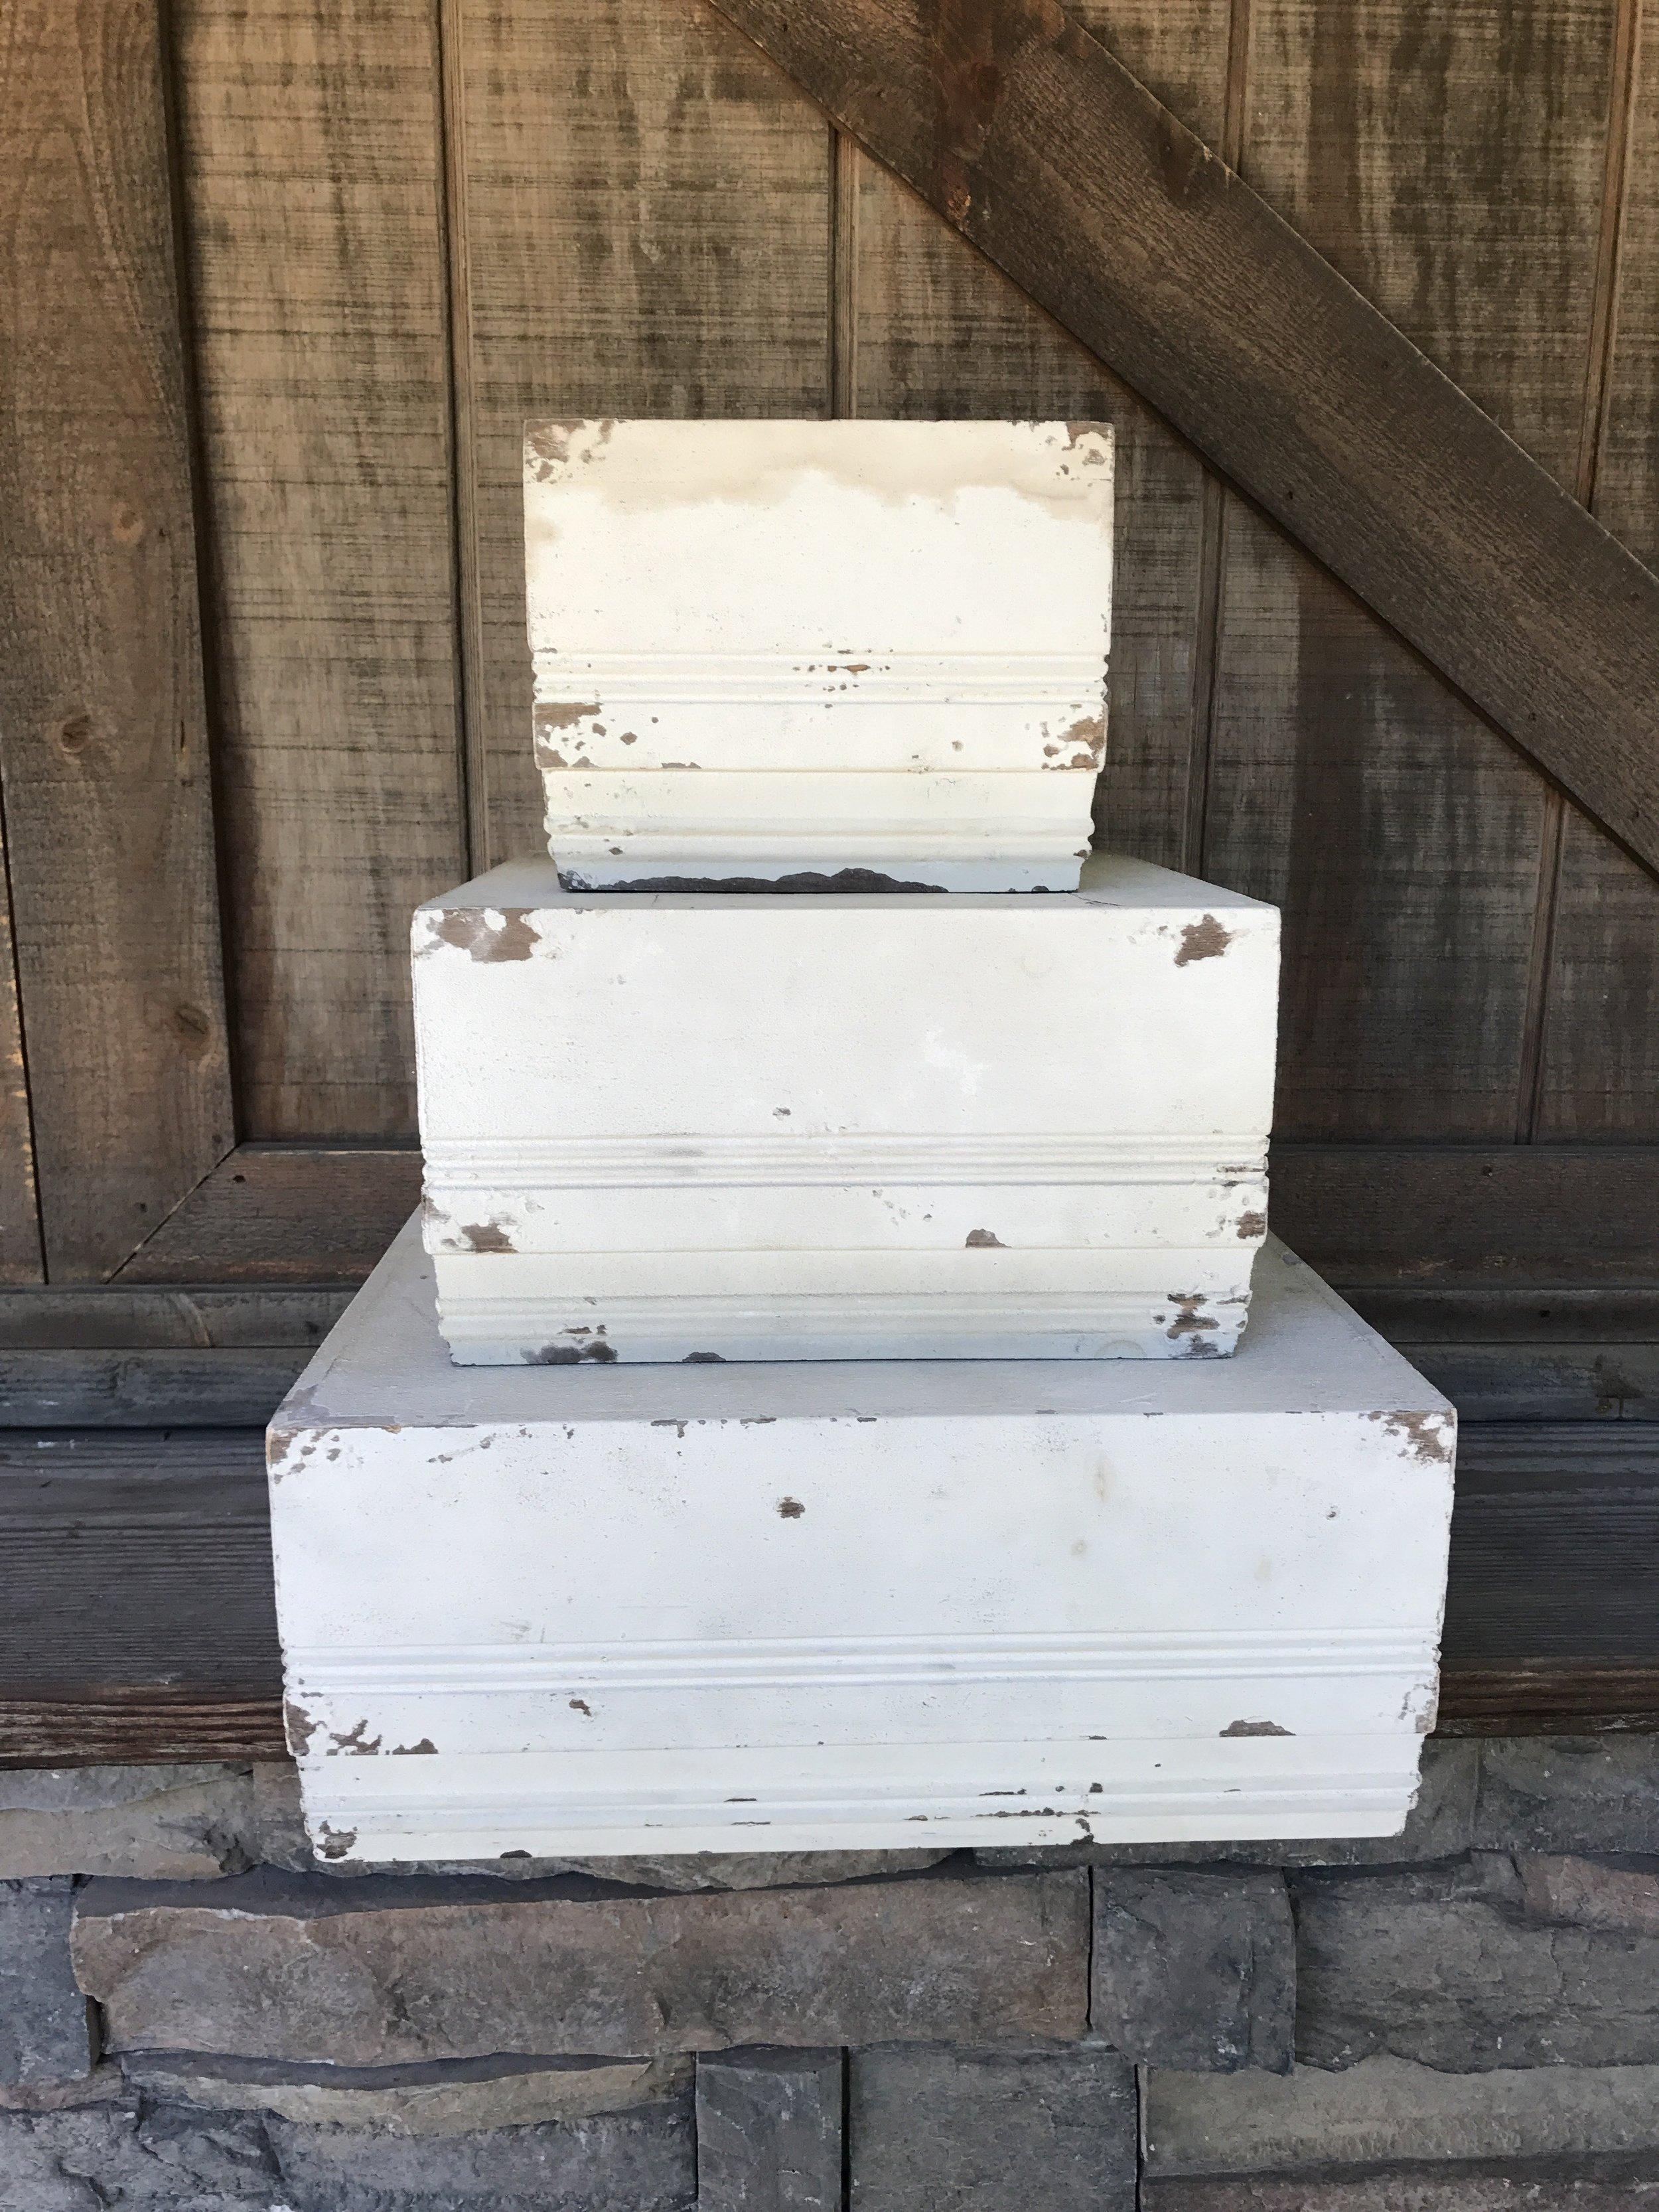 SQUARE WHITE STACKING BOXES - $30